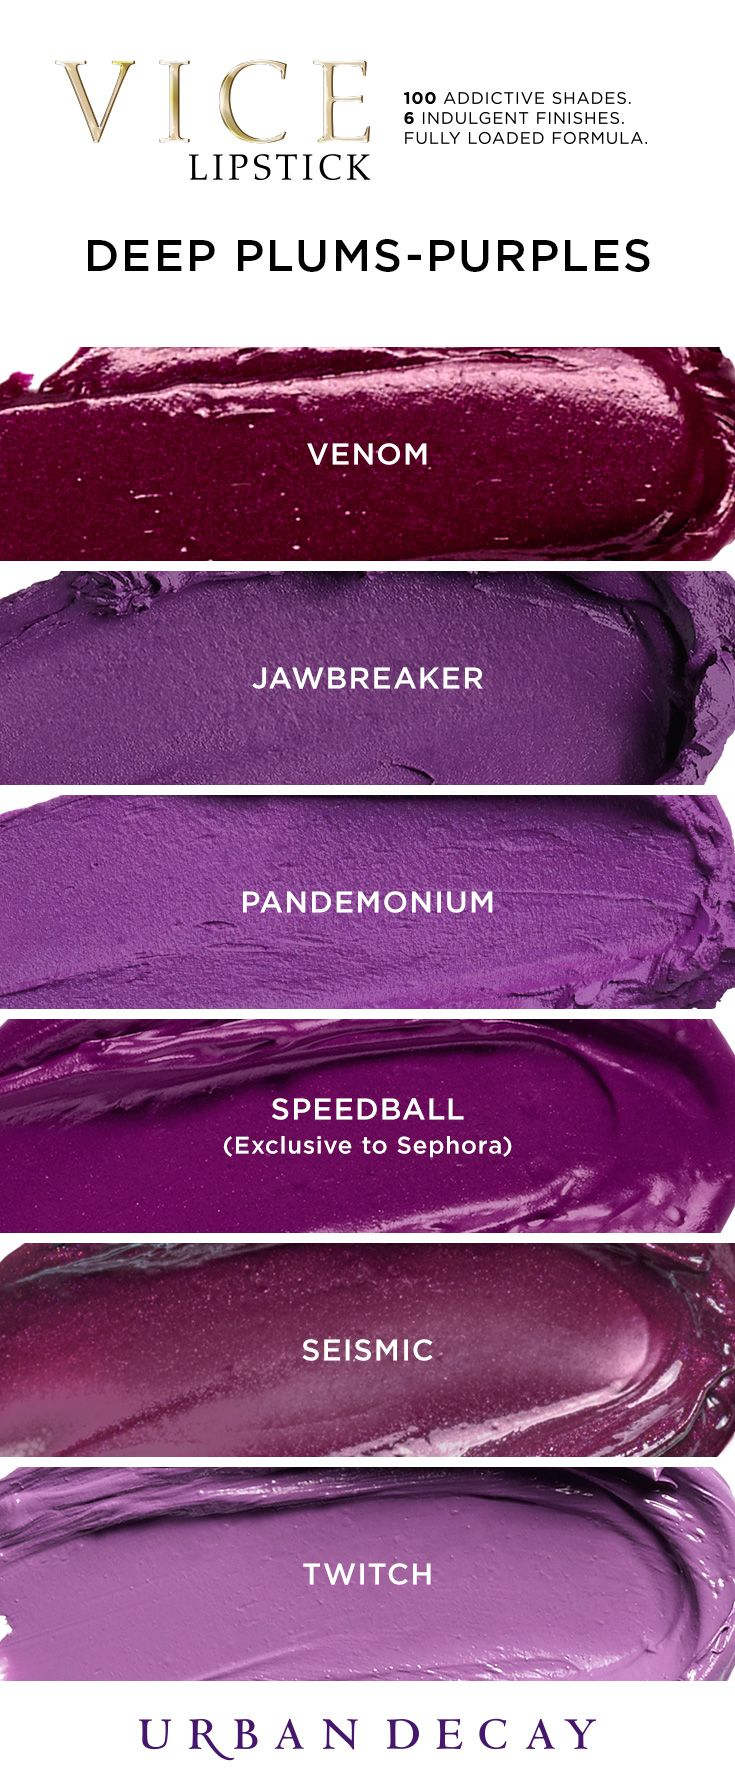 These shades of purple are pure perfection. Try these and all 100 shades of Vice Lipstick now at urbandecay.com. #LipstickIsMyVice